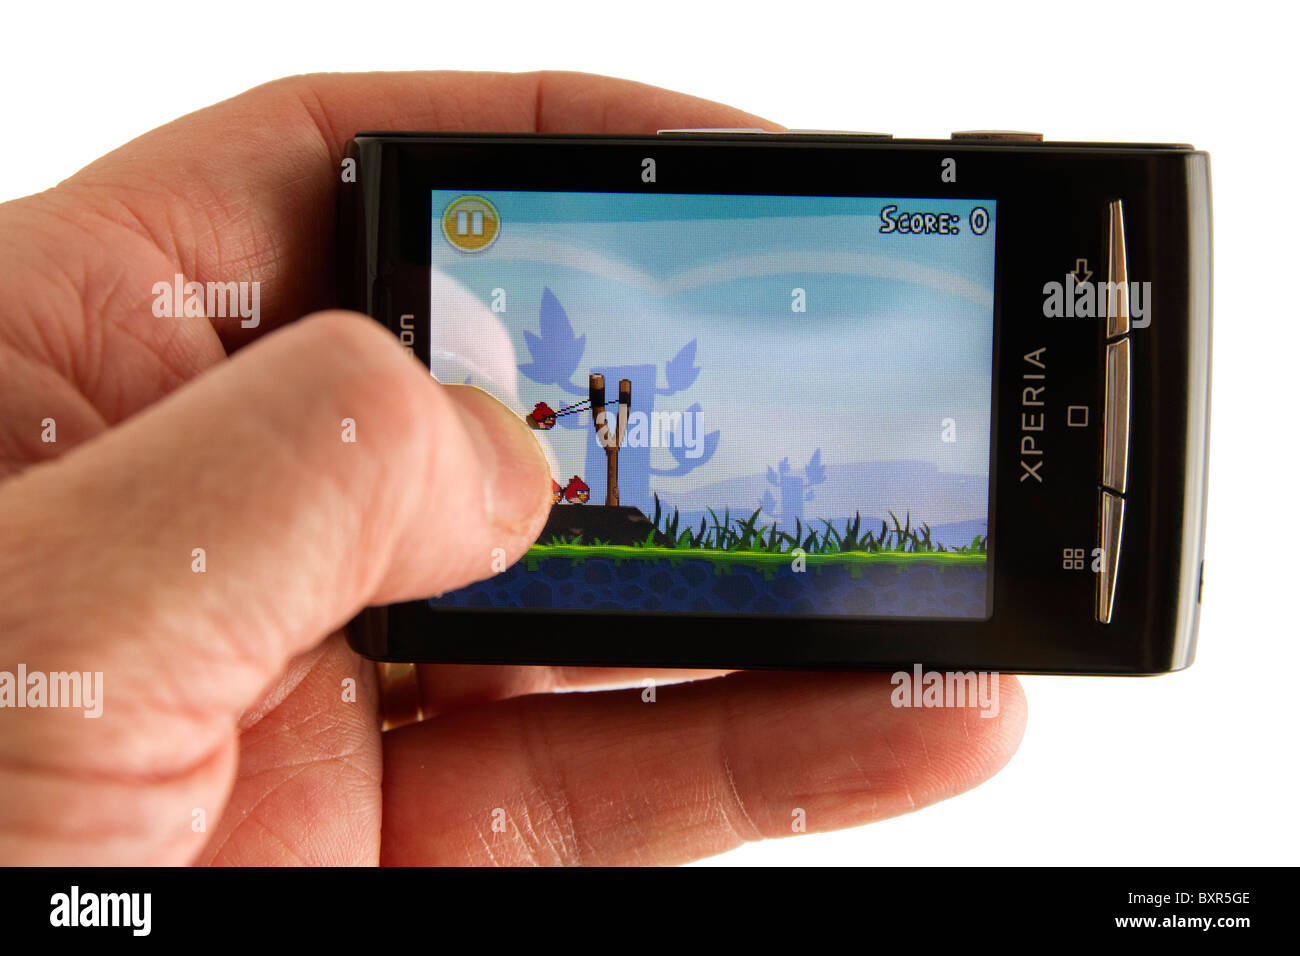 Phone Sony Ericson Android Phone hand holding the android phone sony ericsson xperia x10 mini showing smash hit game angry birds by rovio